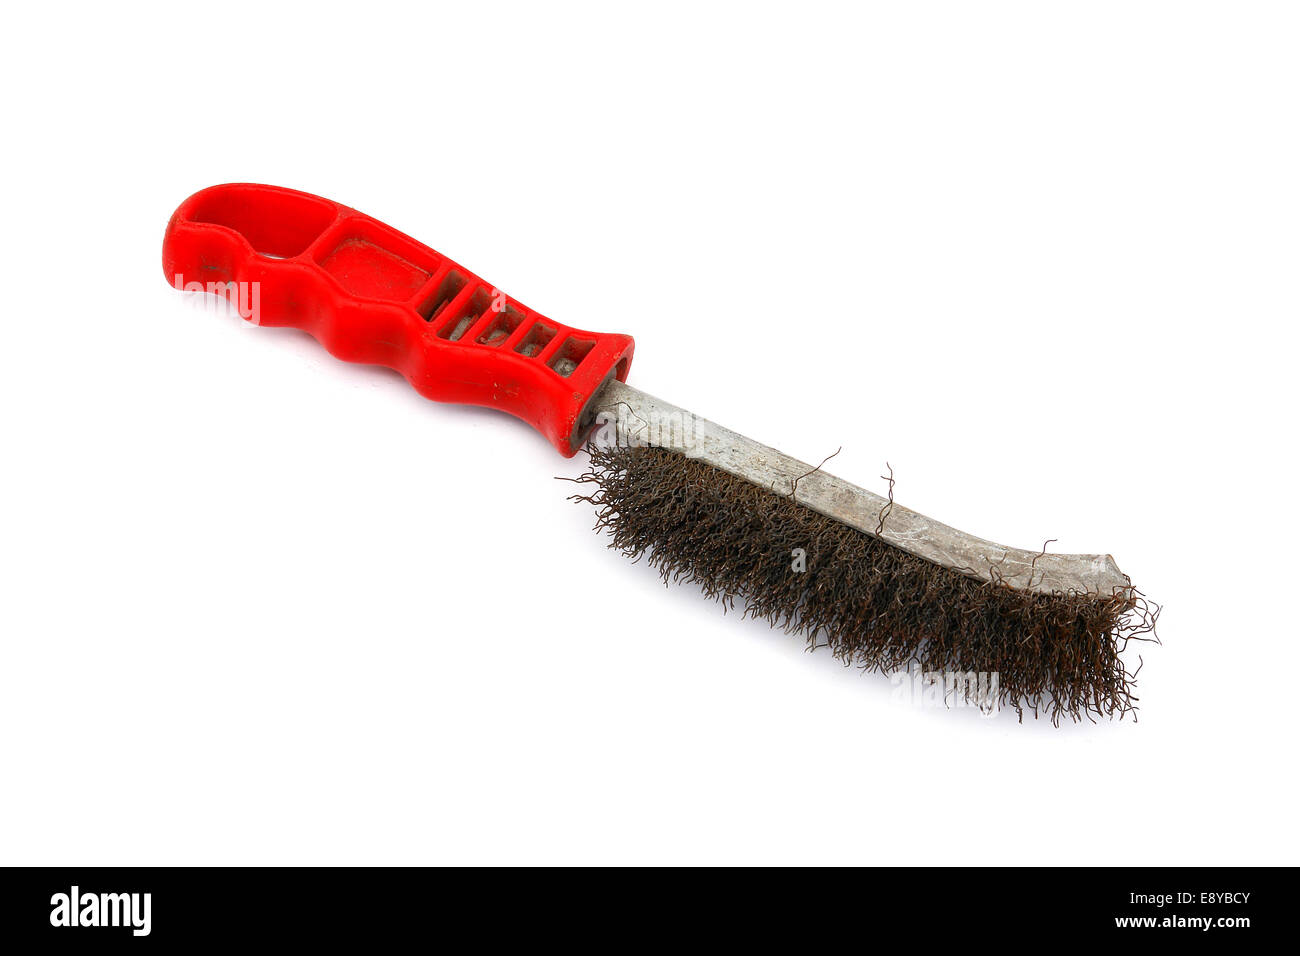 Brush for cleaning metal surfaces - Stock Image